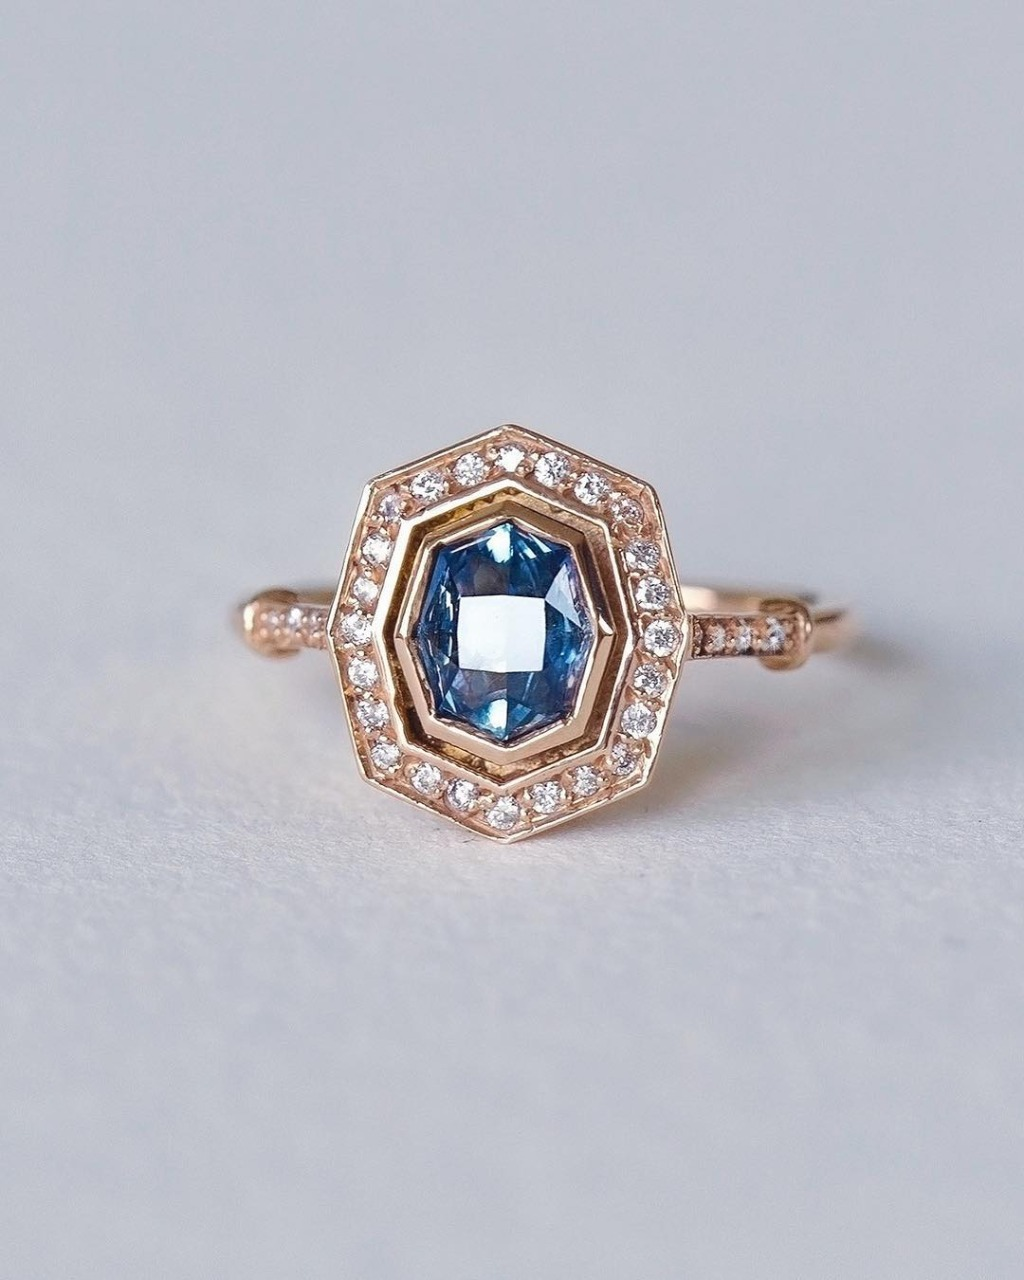 Vintage Art Deco Style Montana Sapphire Engagenment Ring One-Of-A-Kind by S. Kind and Co